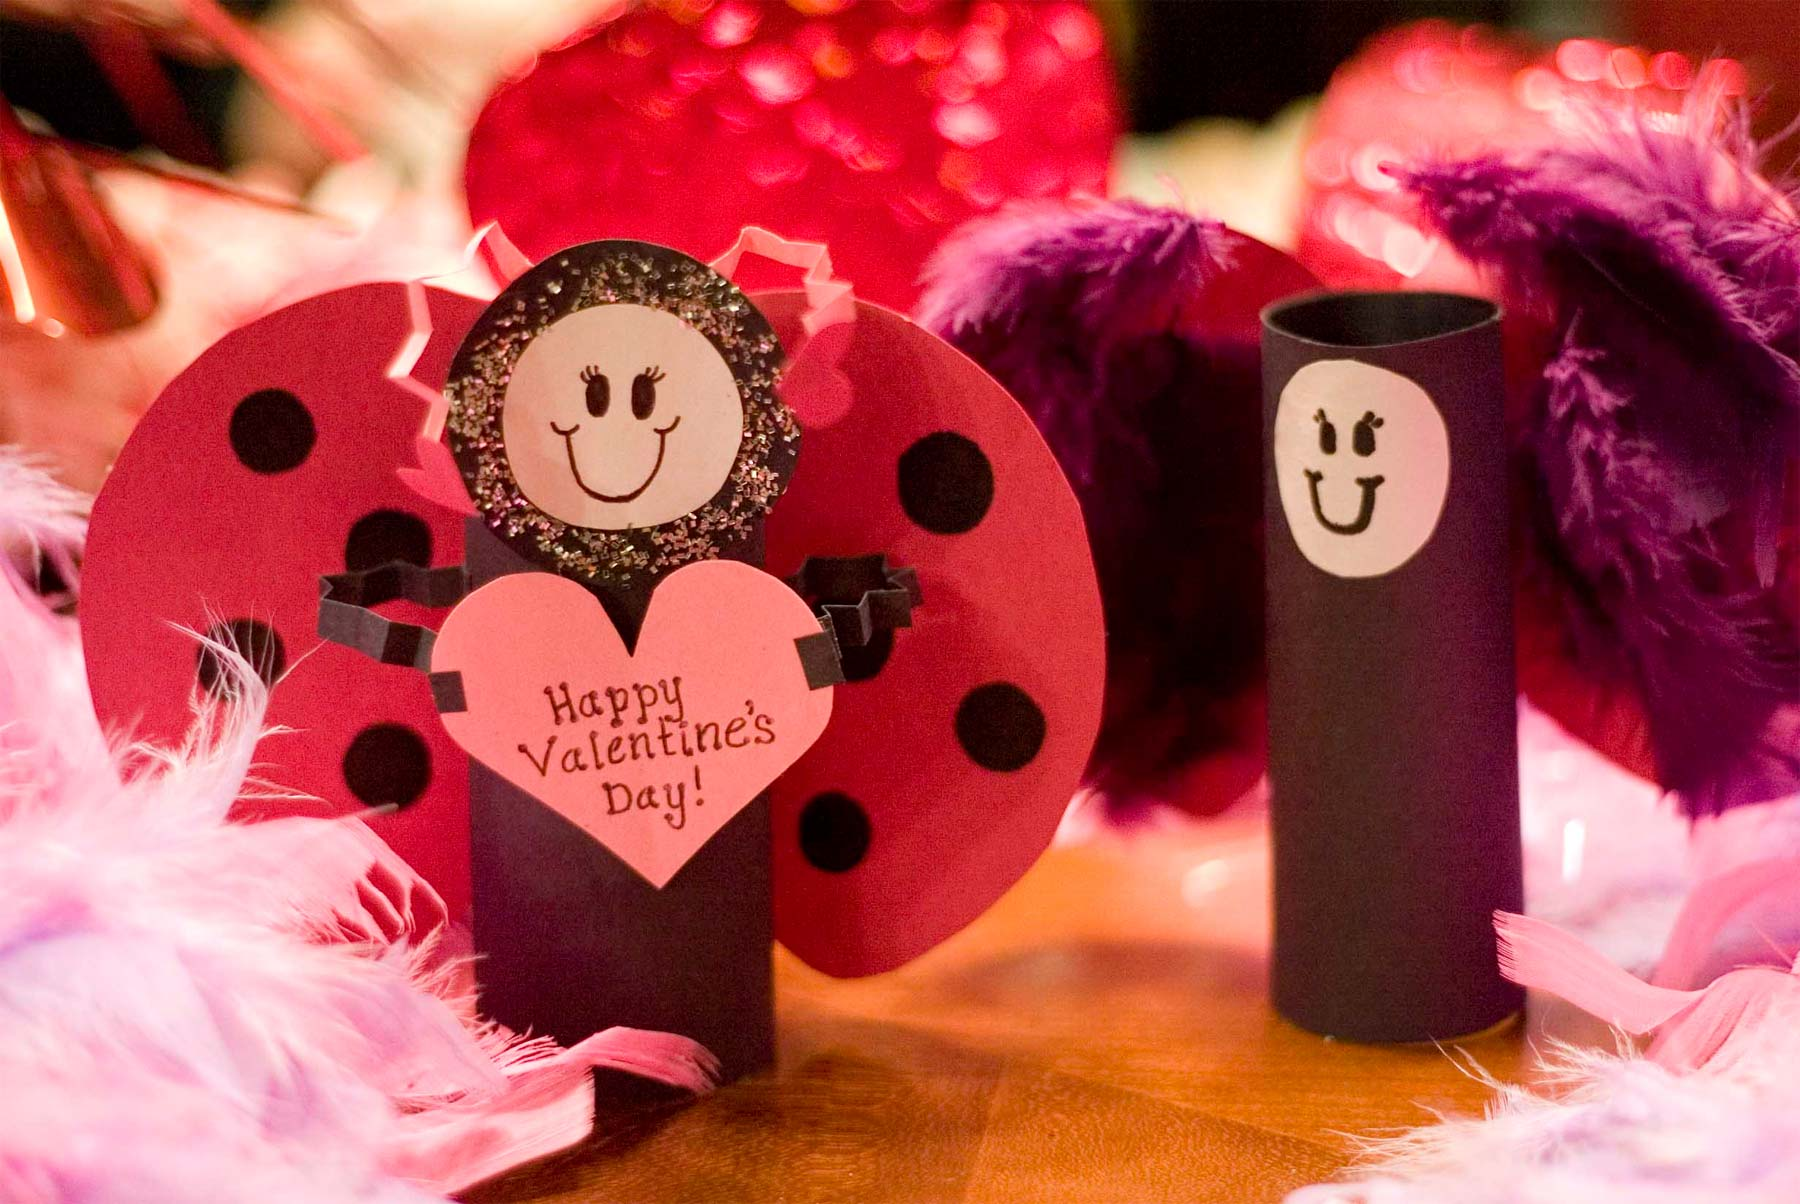 Valentines-Day-Gifts-For-Your-Girlfriend-